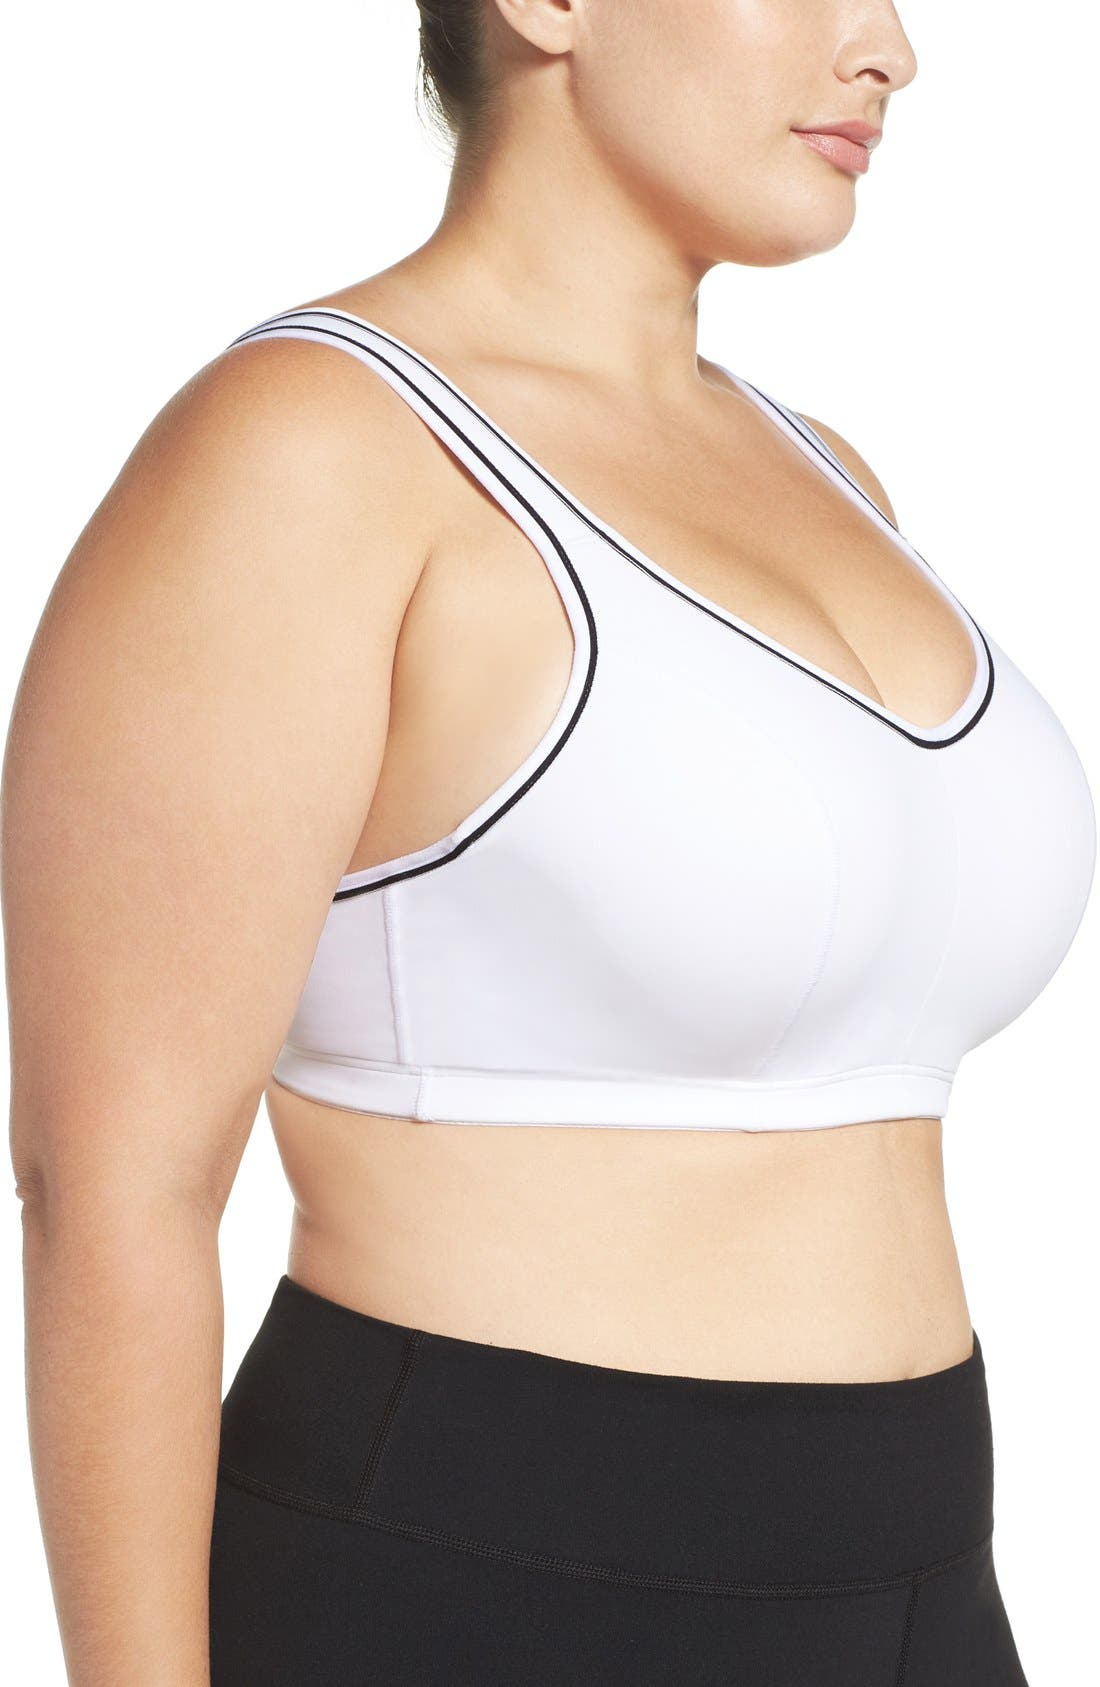 'Gabriella' Underwire Sports Bra,                             Alternate thumbnail 3, color,                             White